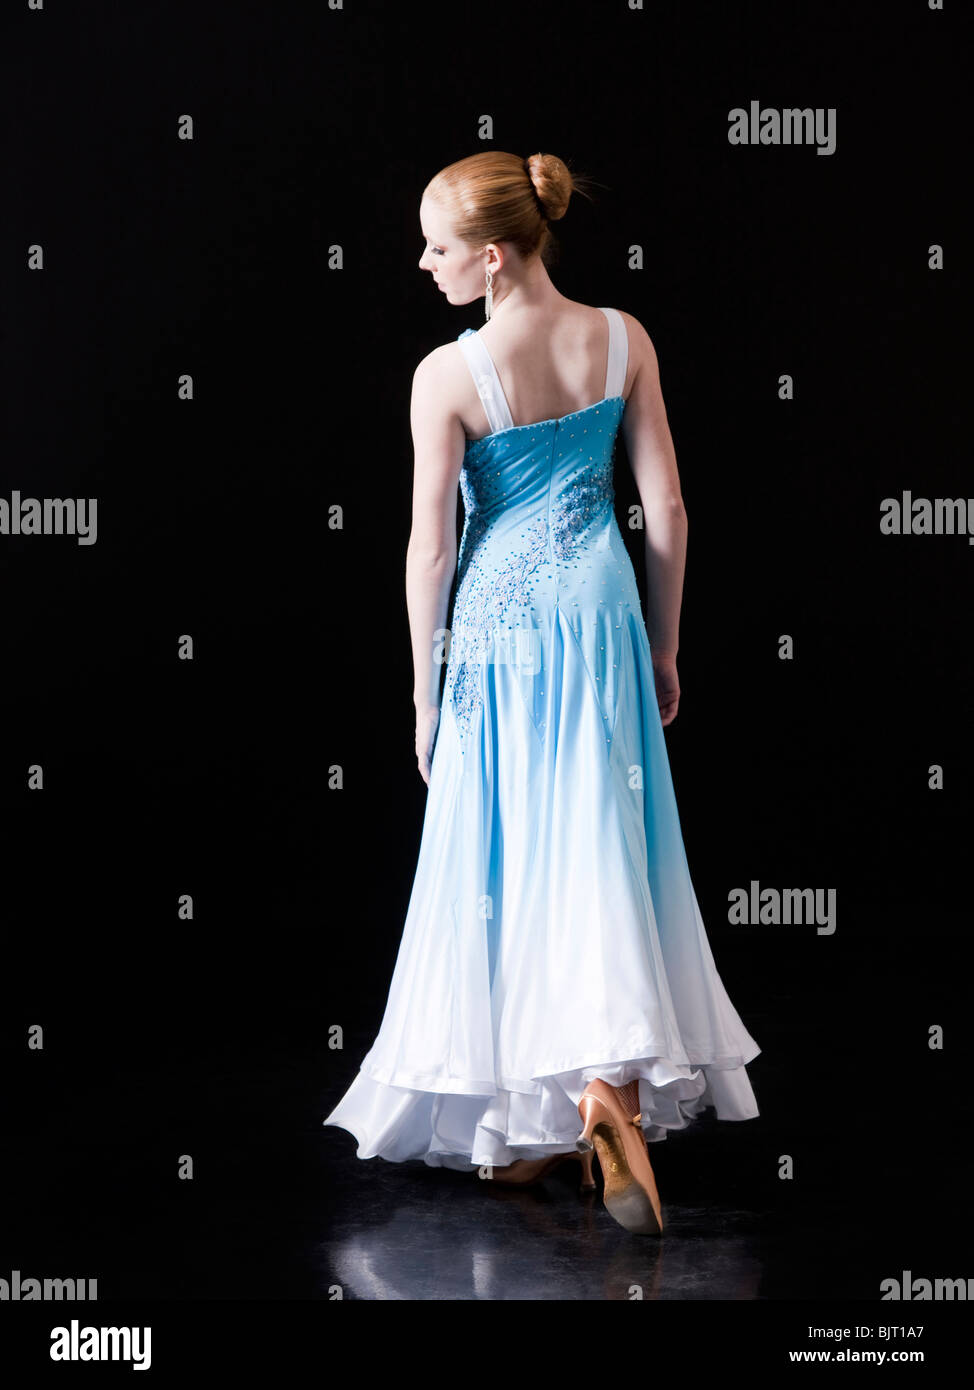 Young woman posing as professional dancer, studio shot Stock Photo